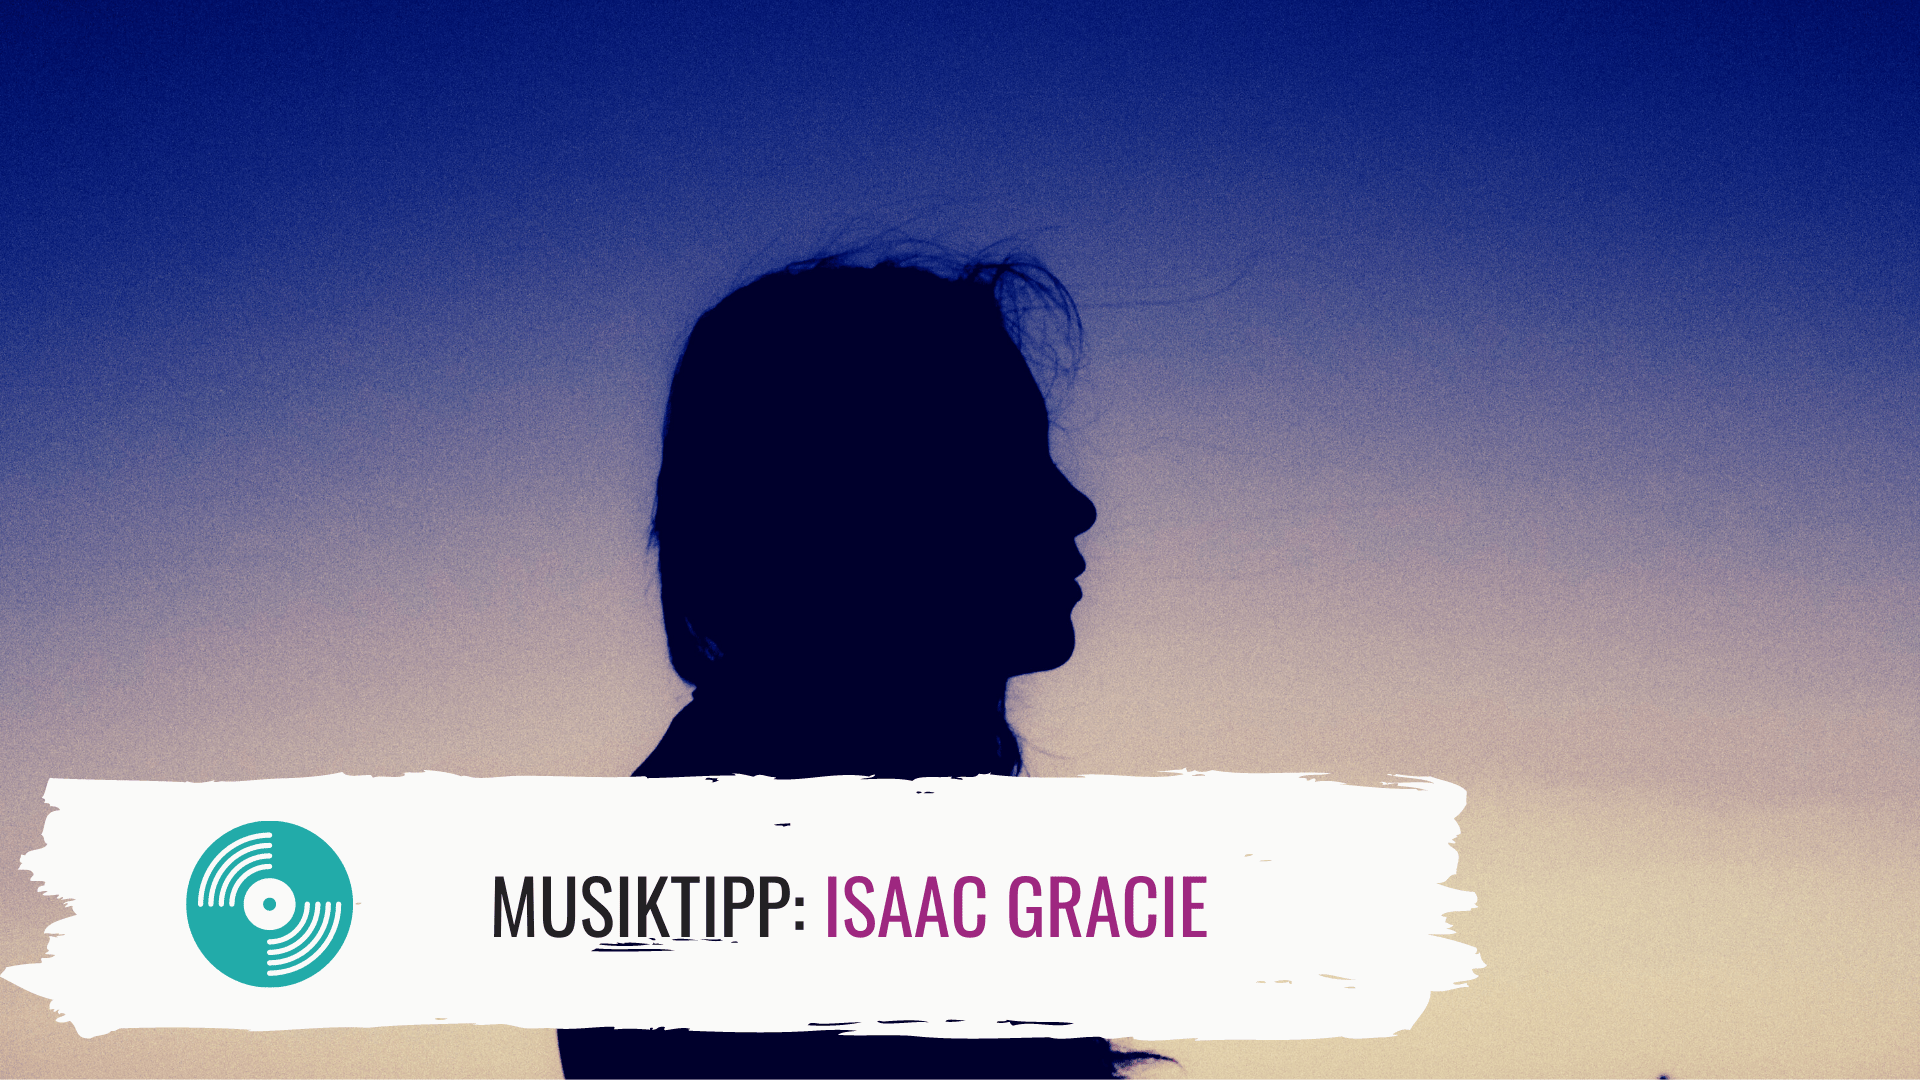 Isaac Gracie: I love my Singer/Songwriter